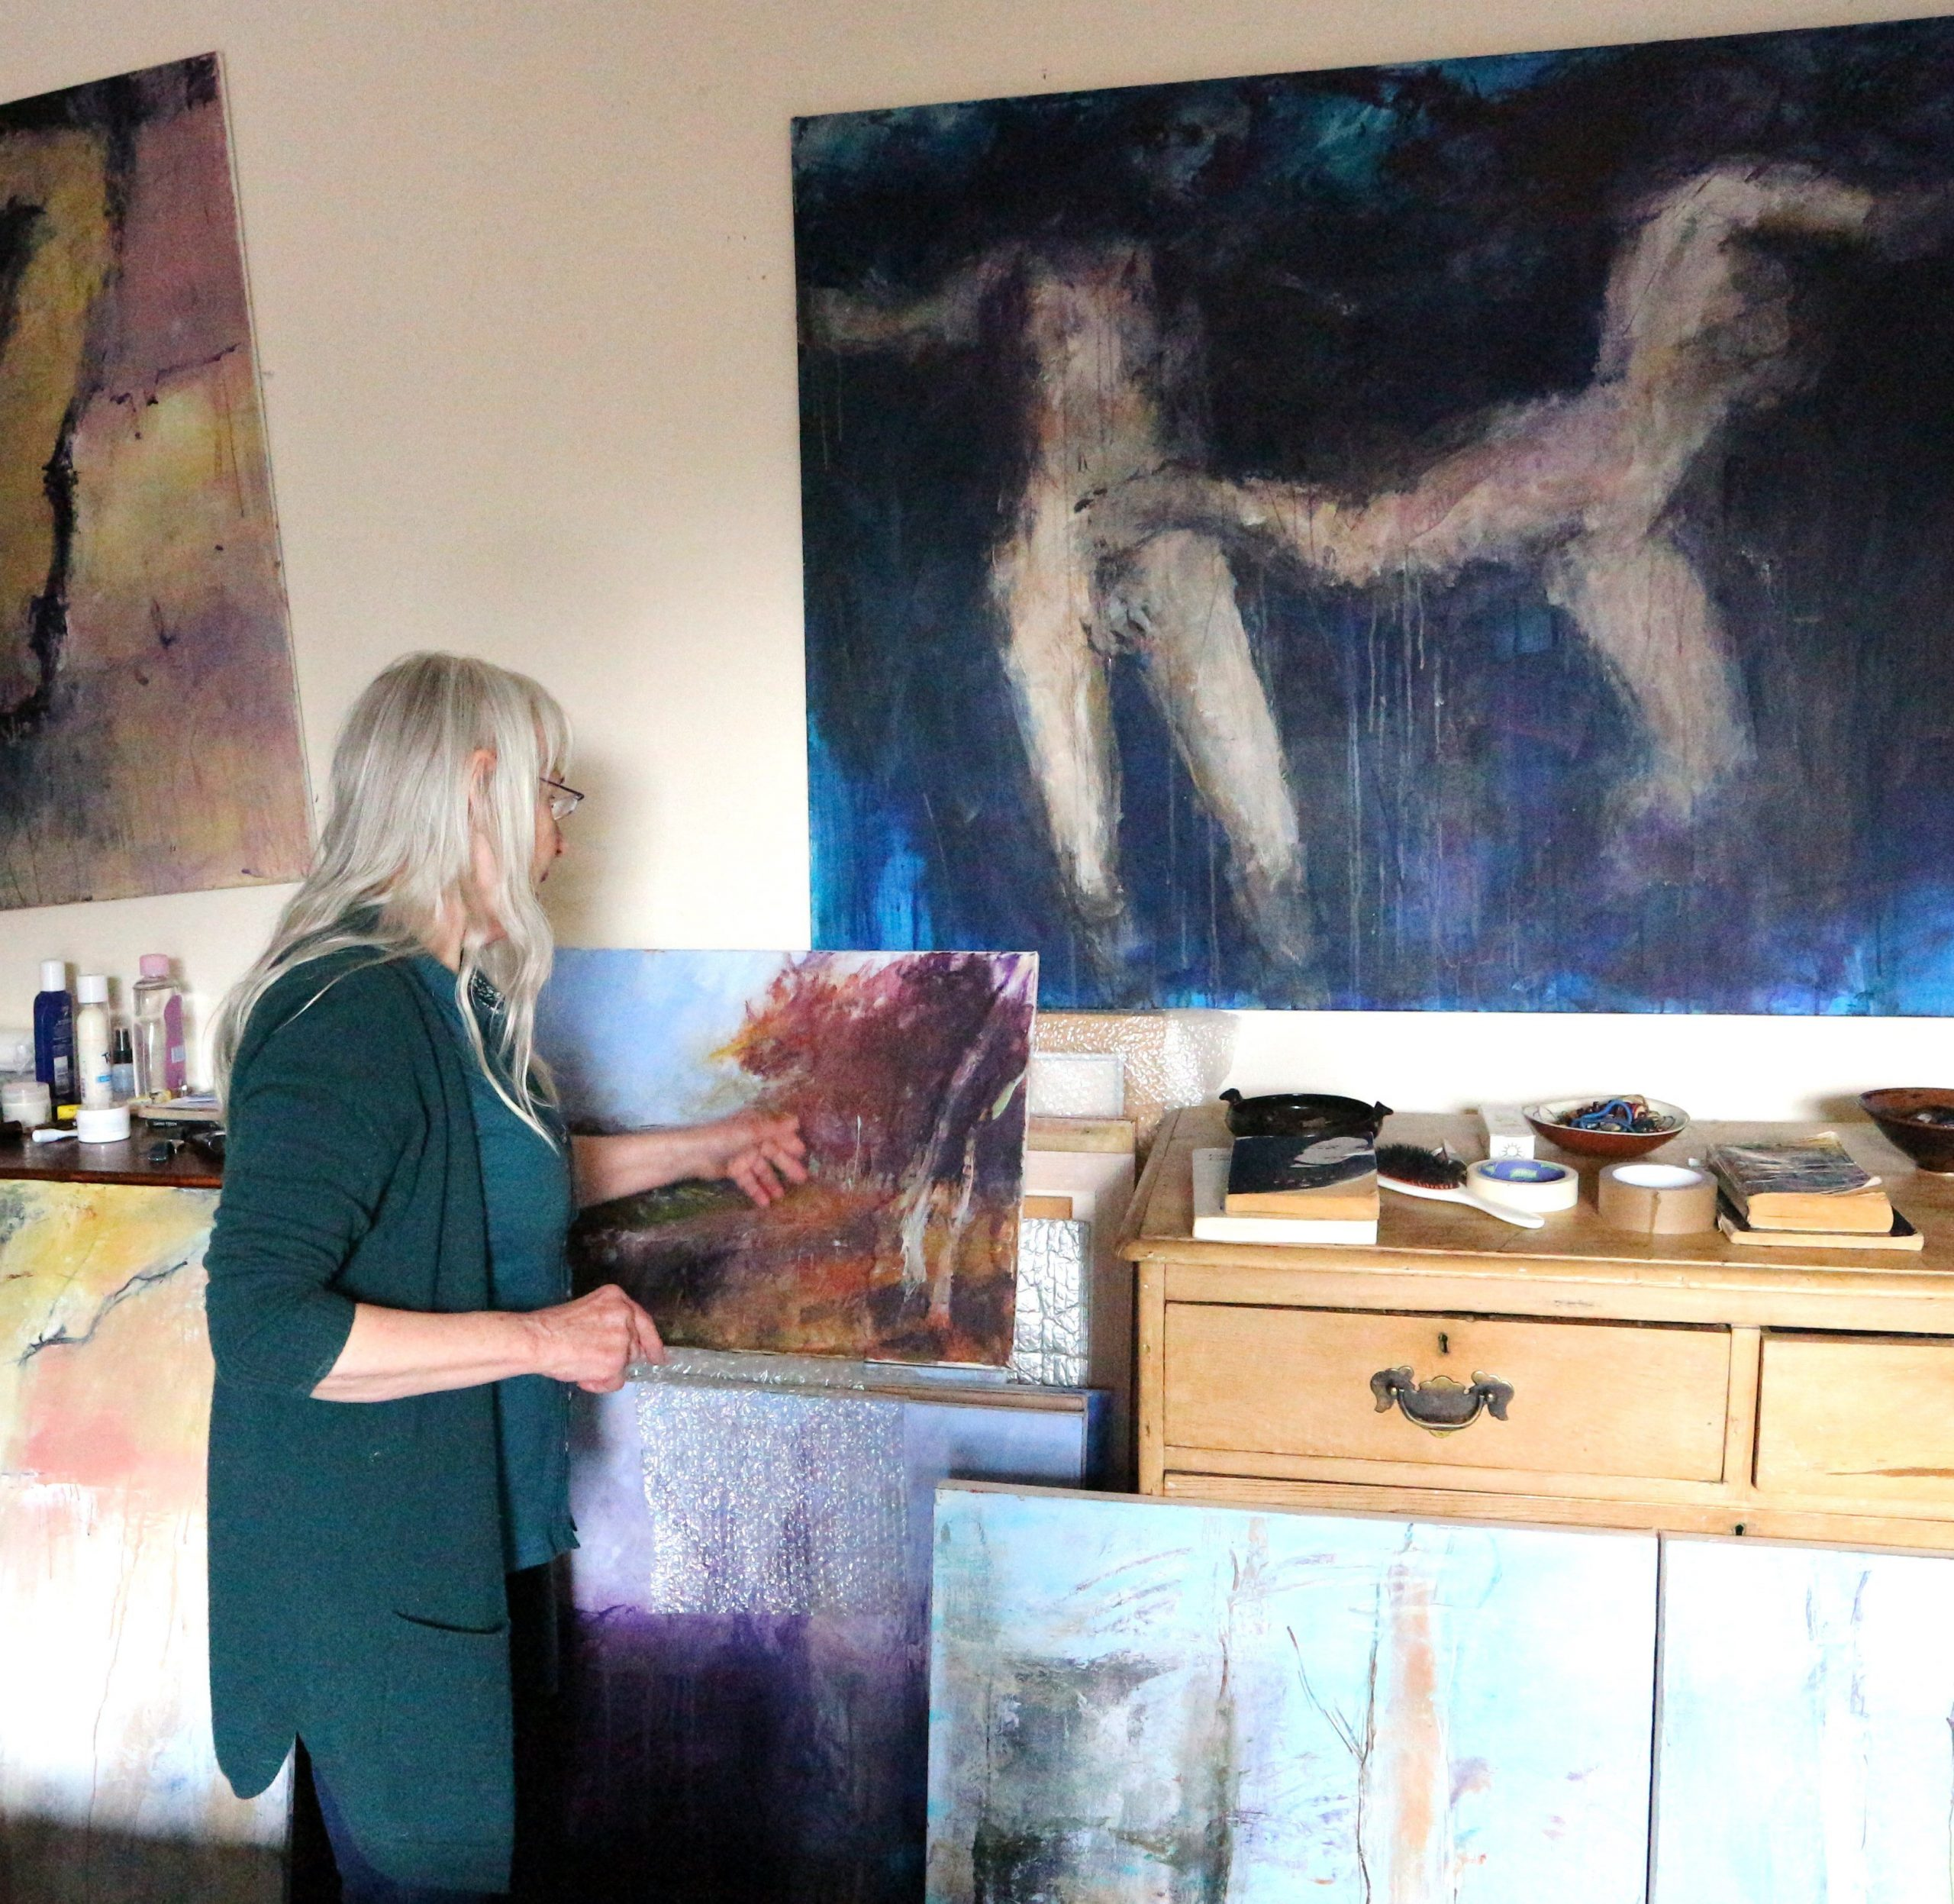 painters Tubes Editor interviews Pauline Rignall at her studio for issue#8